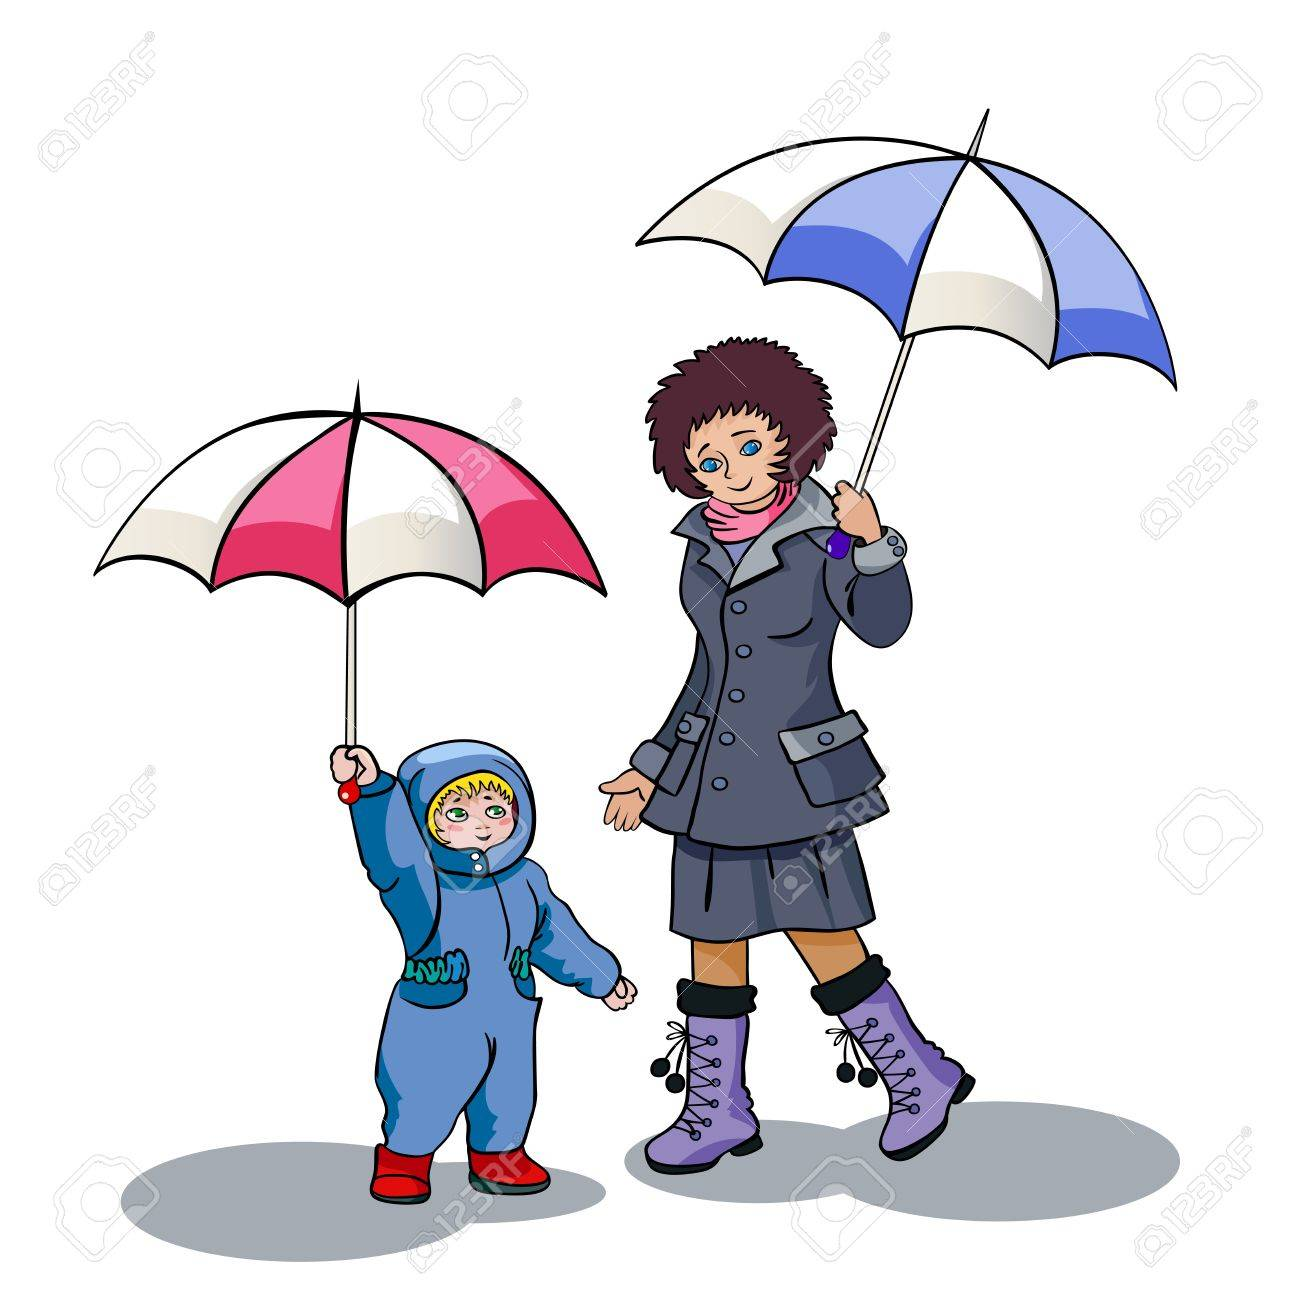 Mum and the son walk during a rain. Stock Vector - 11731121